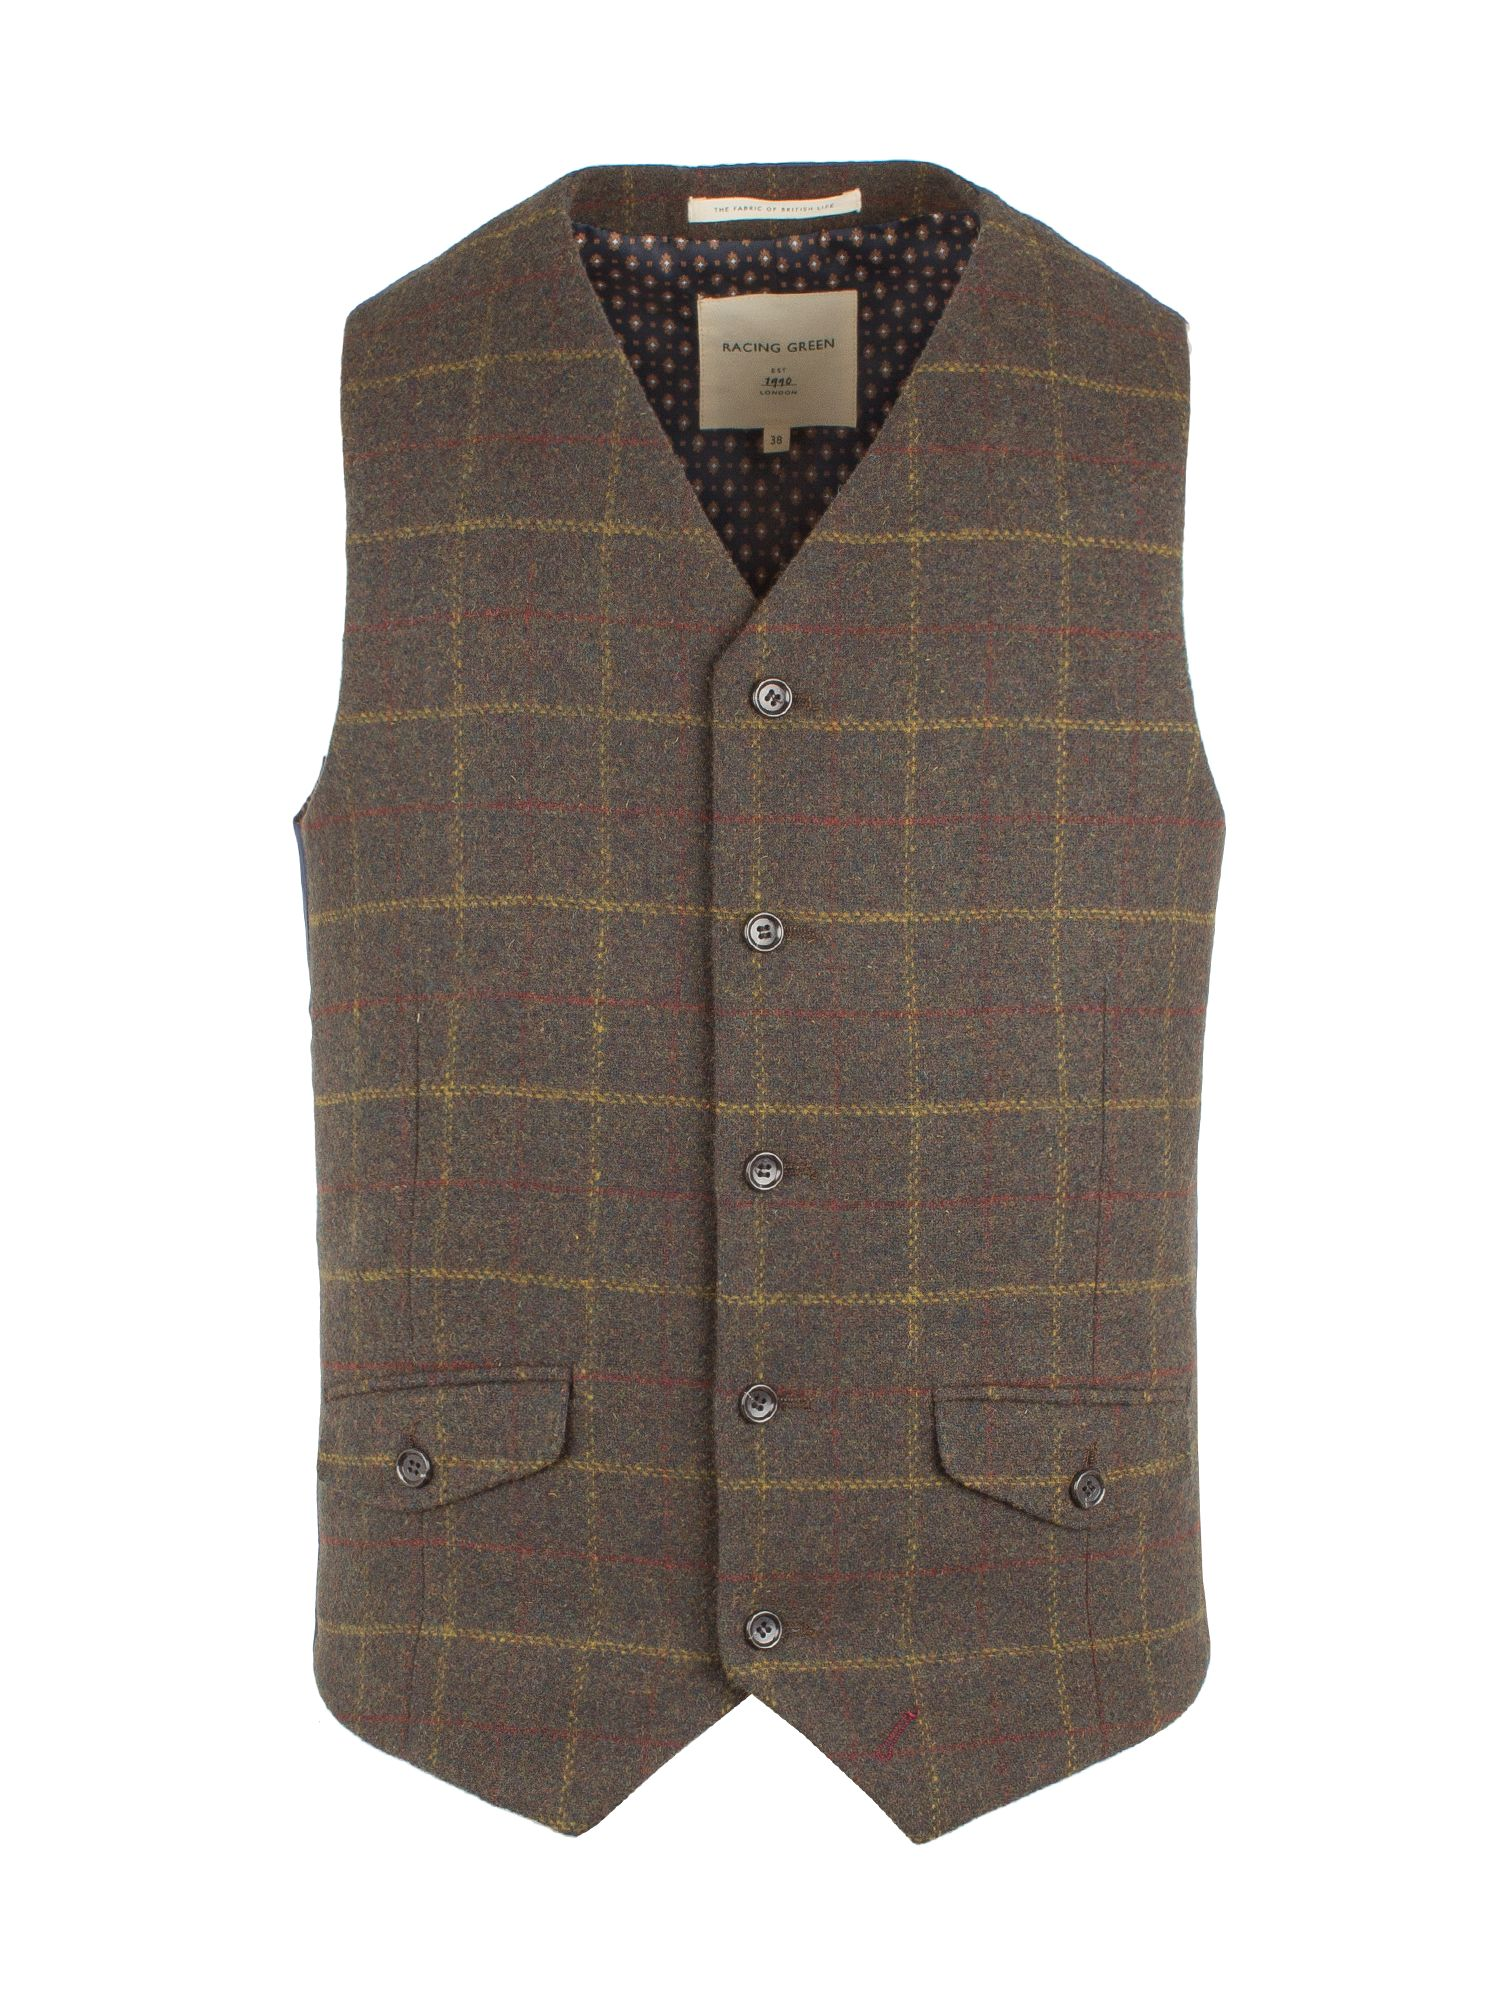 ditilink.gq offers GREEN Waistcoatat cheap prices starting US$5, FREE Shipping available worldwide.